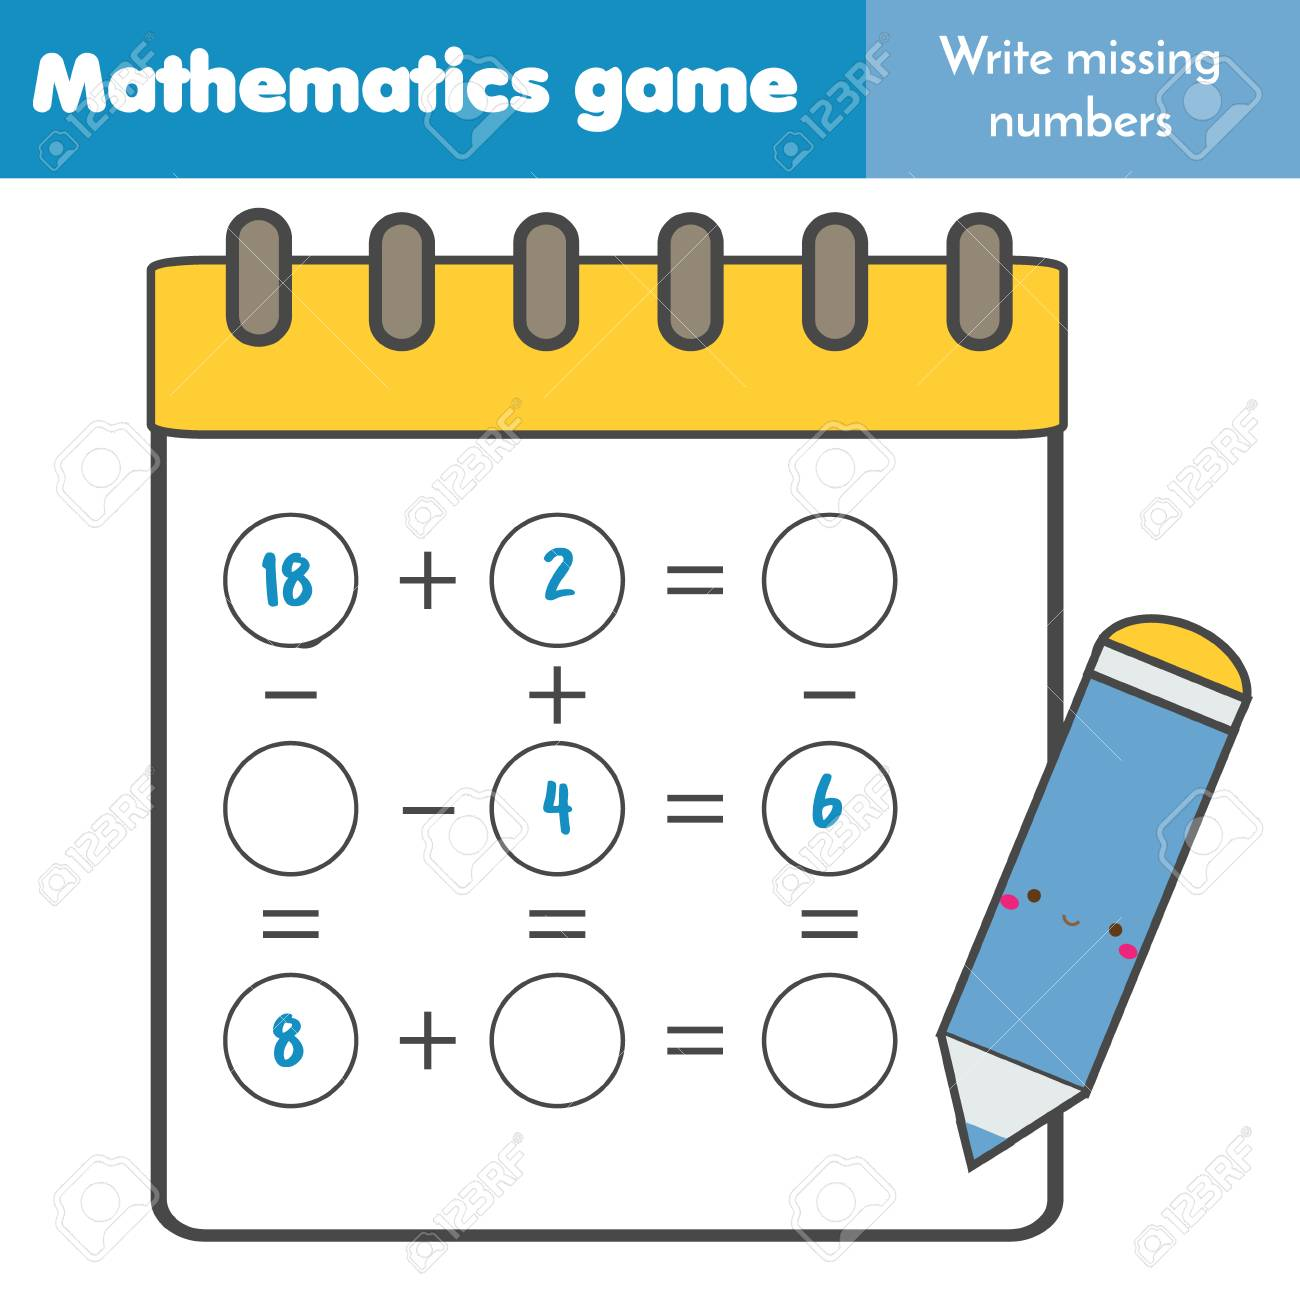 Math educational game for children. Write missing numbers and complete equations. Study subtraction and addition. Mathematics worksheet for kids - 114705415